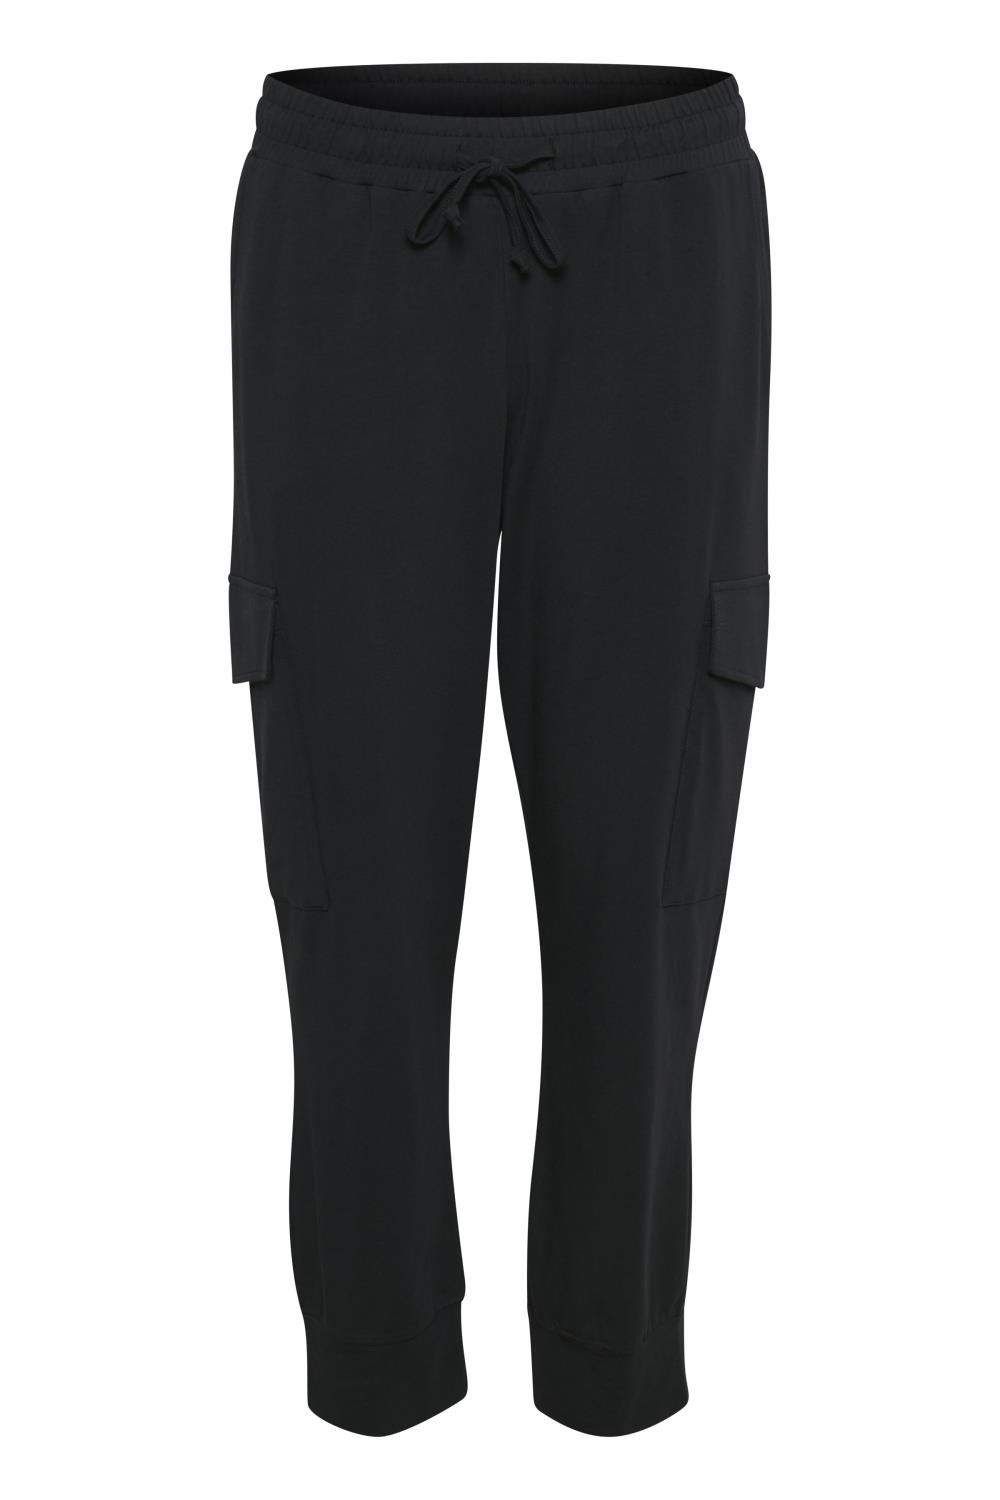 Kaffe Siggi Linda Cropped pants, black deep